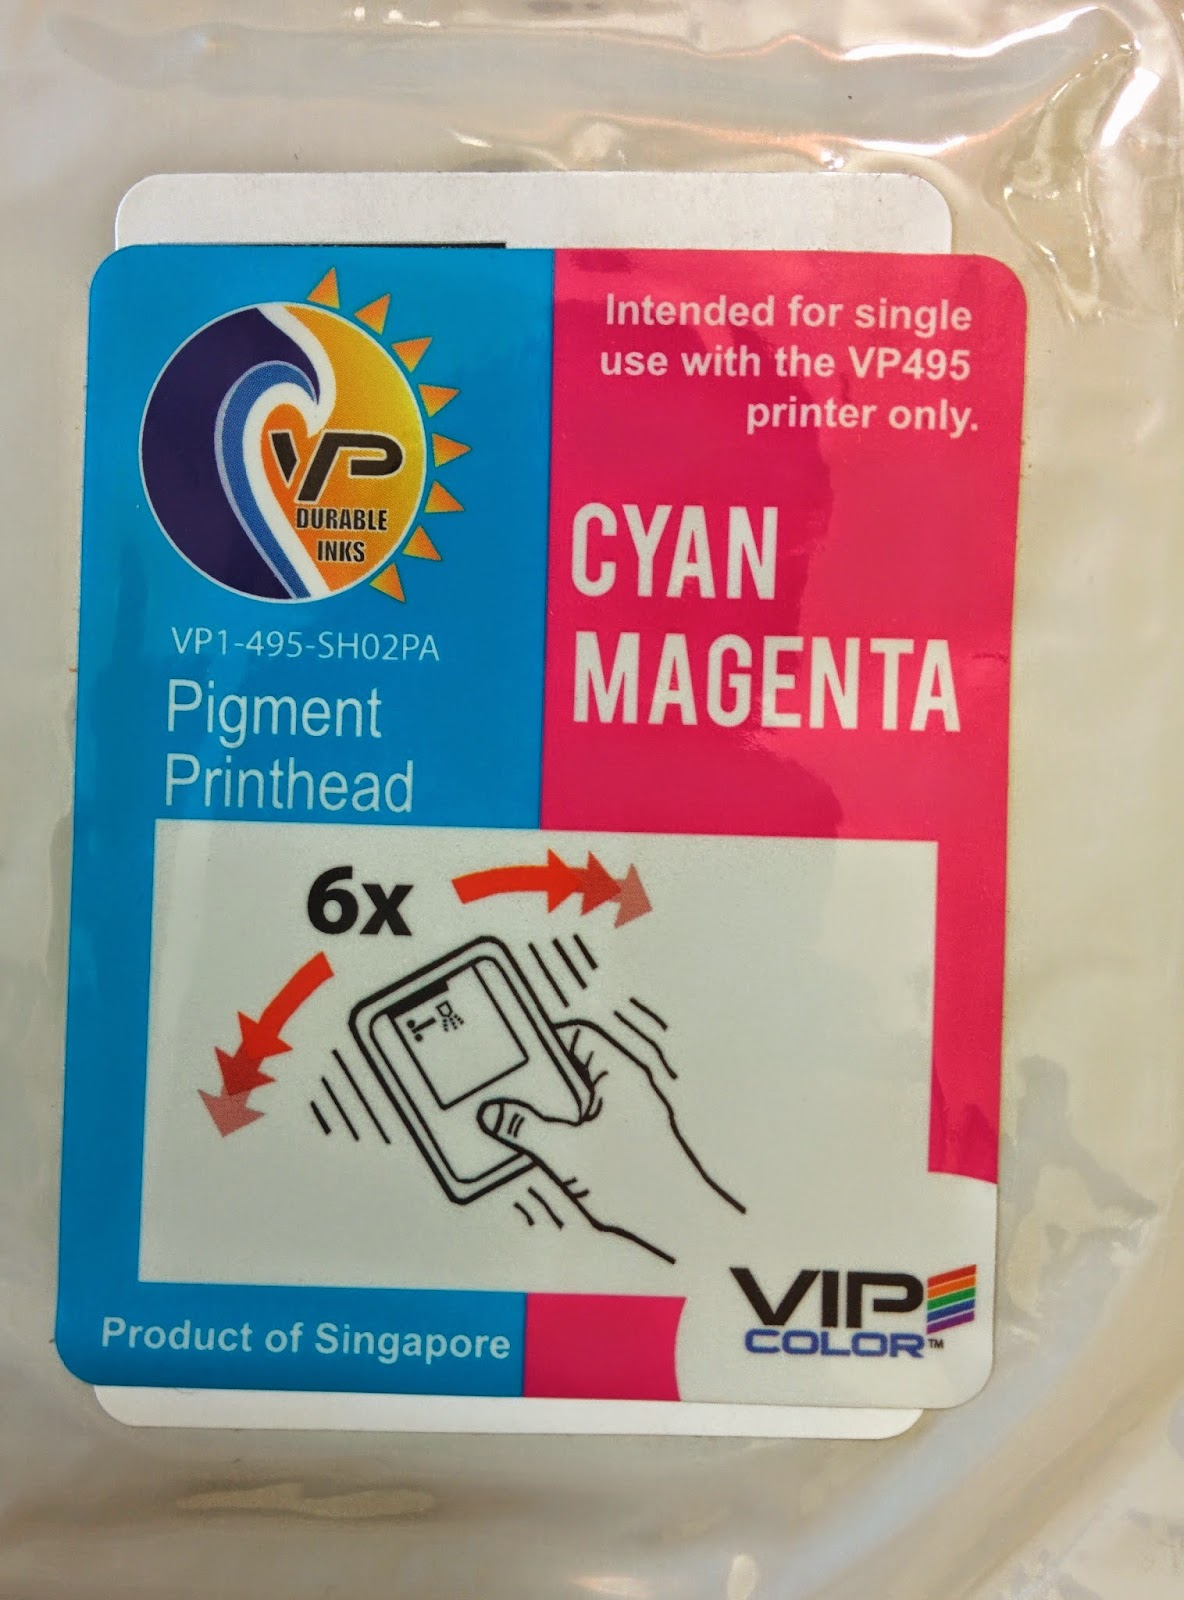 Color printer label - I Did Find The Labeling Of The Ink A Bit Odd As You Can See Easily The Hp Label Behind The Vip Label